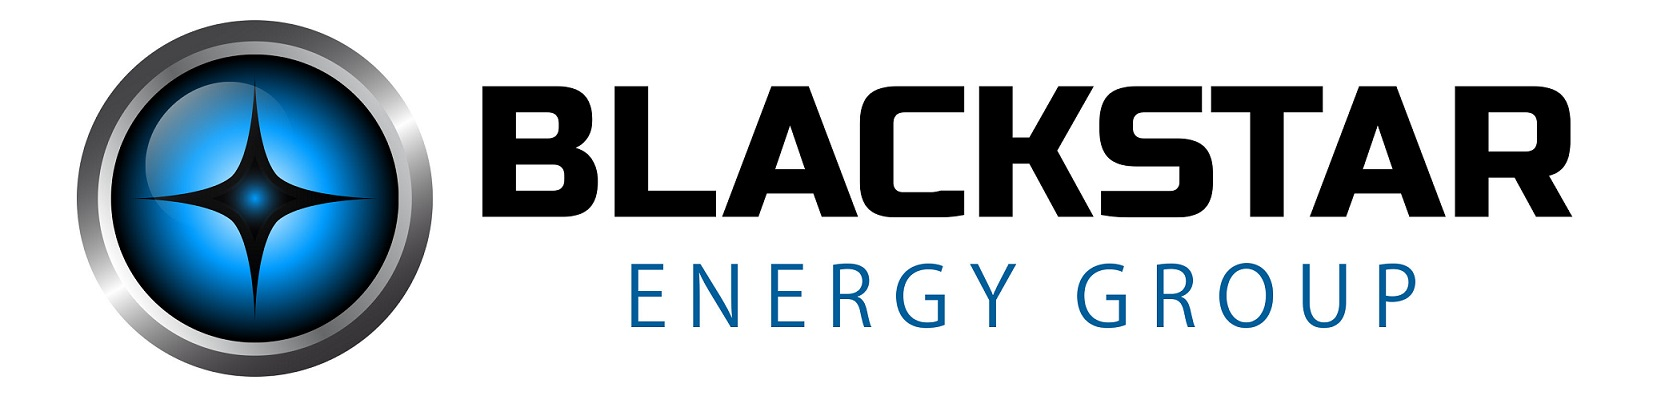 BLACKSTAR LOGO ENERGY GROUP